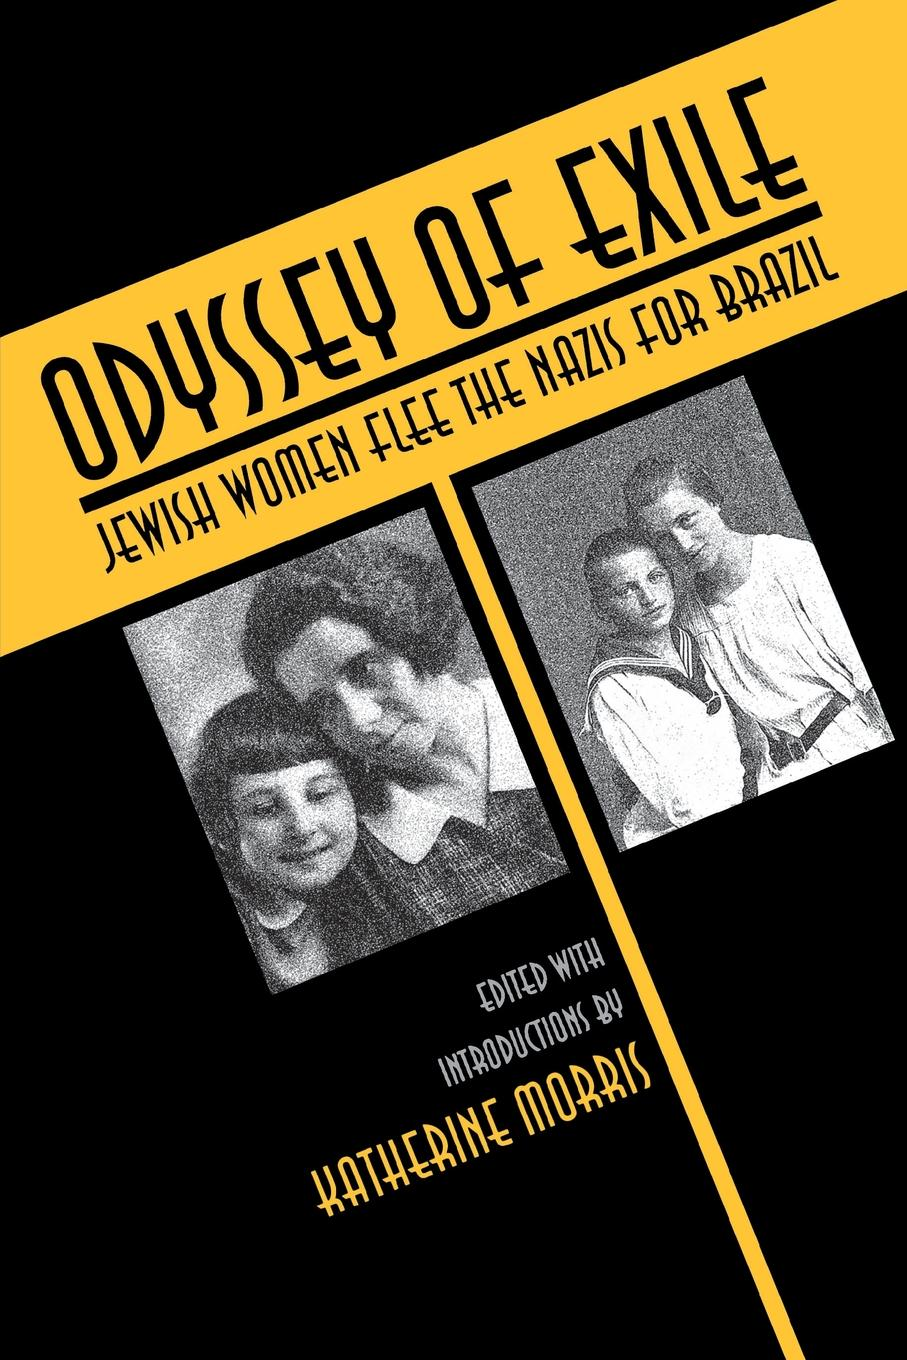 Odyssey of Exile. Jewish Women Flee the Nazis for Brazil the odyssey of the aor